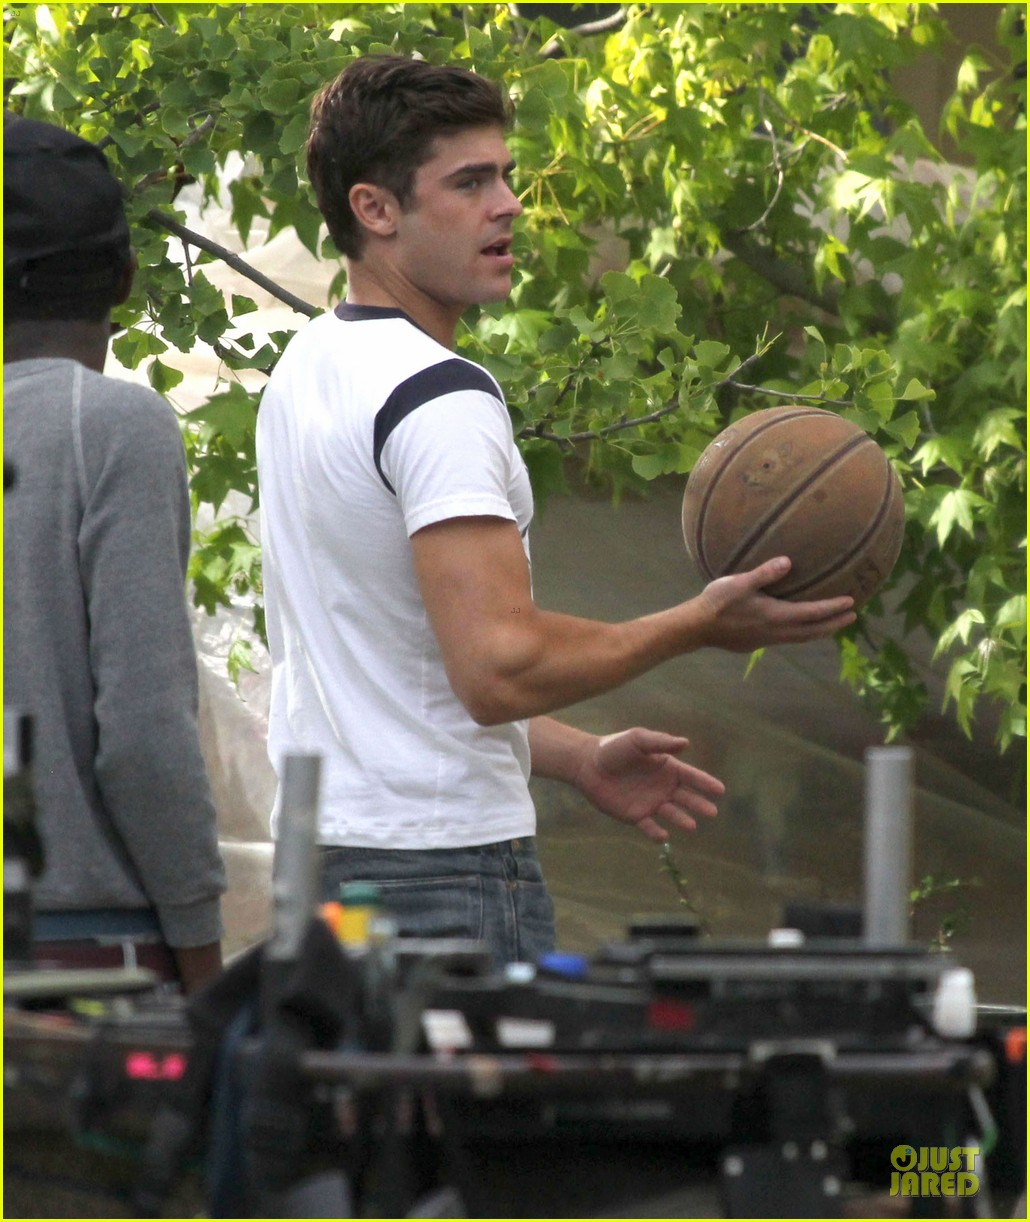 zac efron abs flashing townies basketball set 112866287